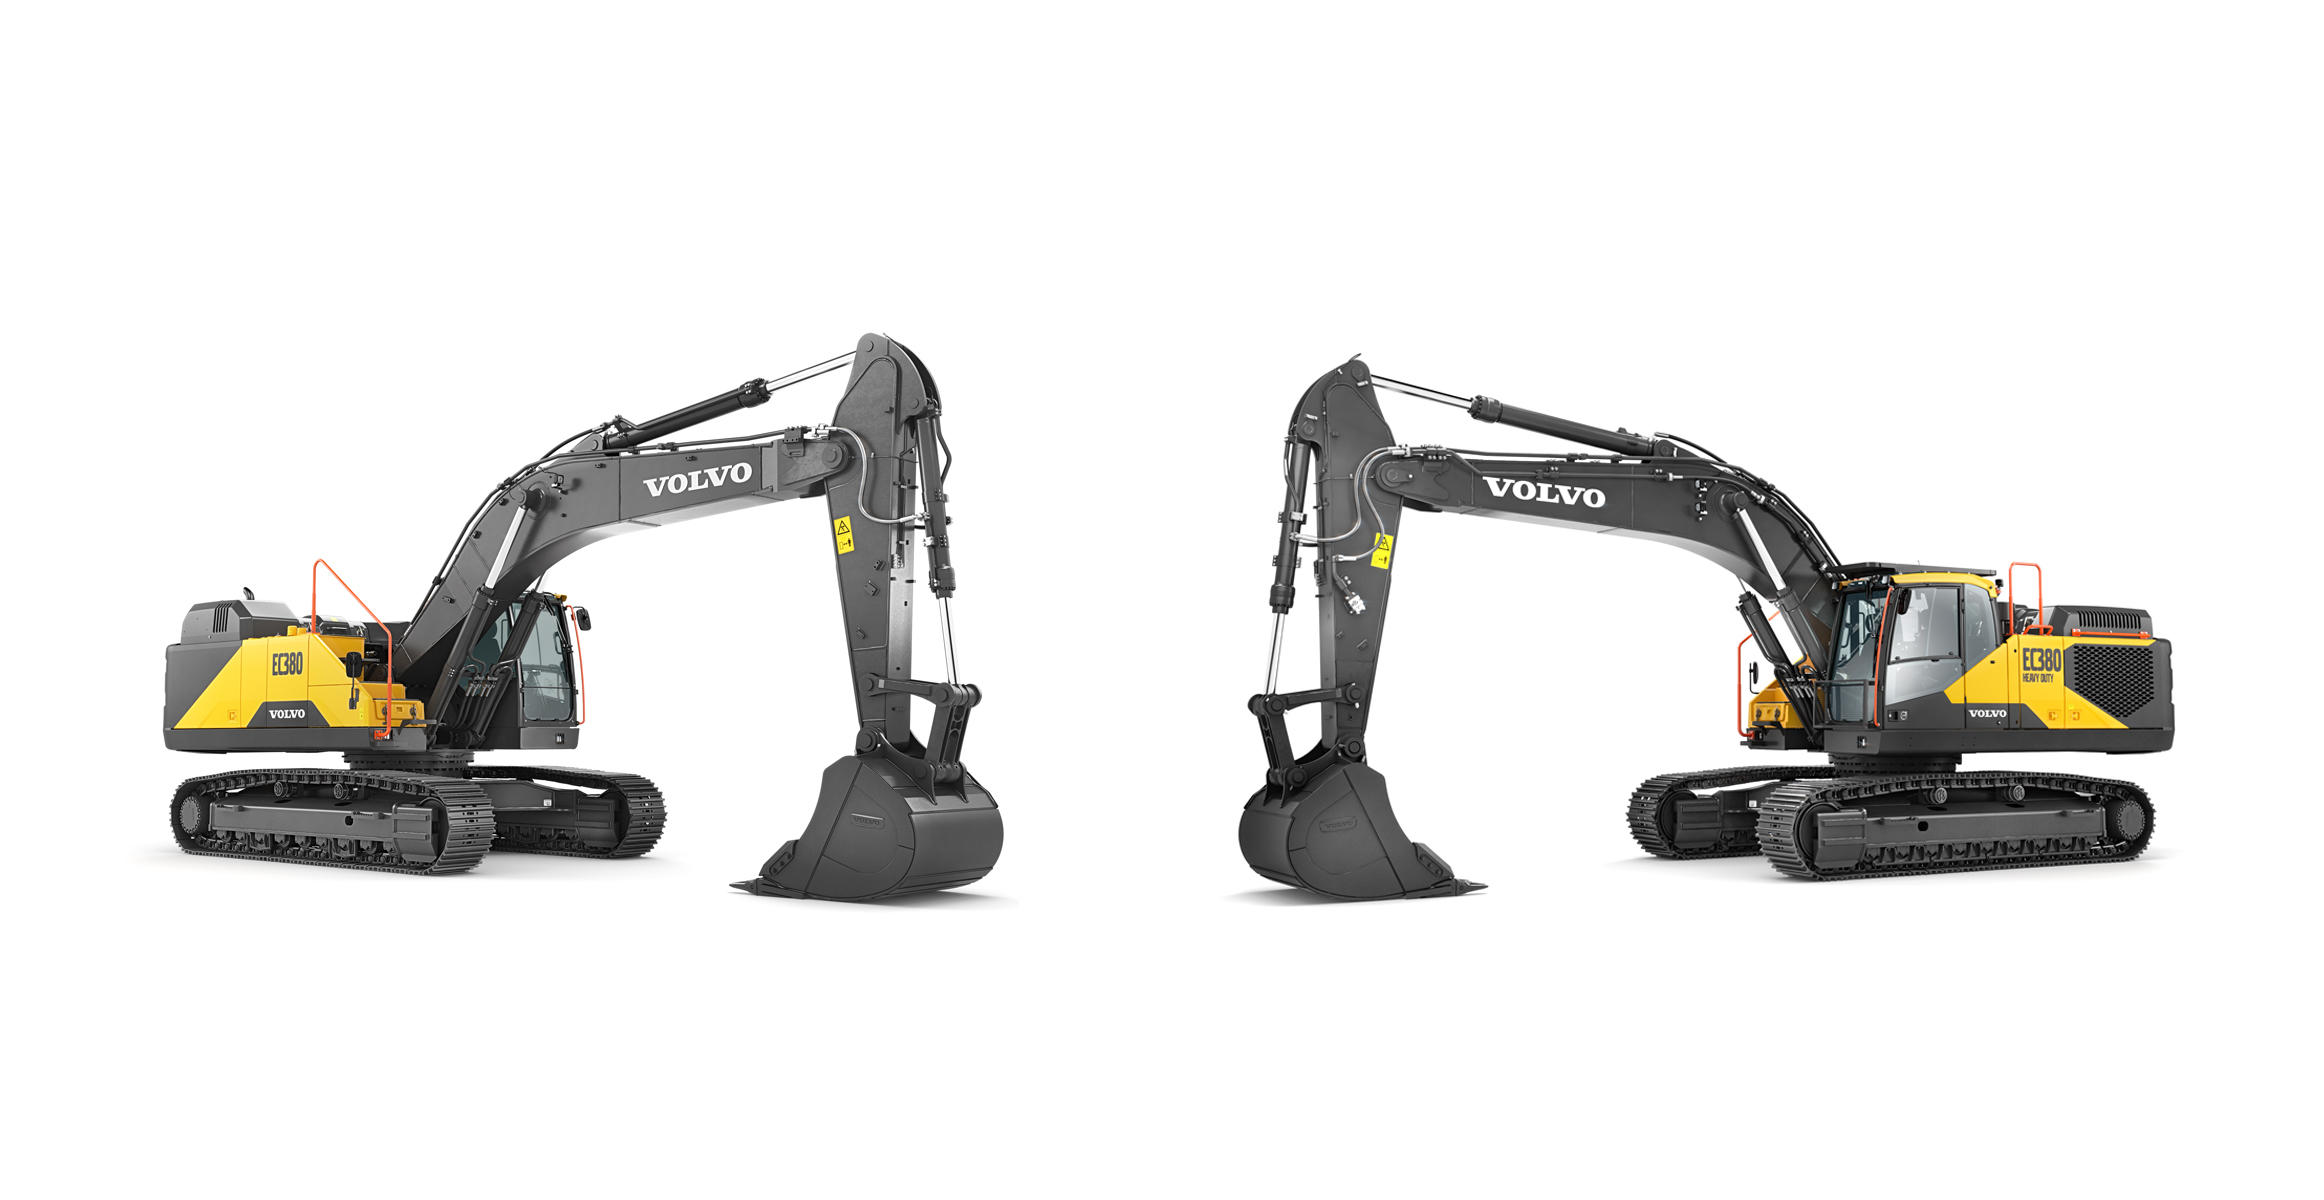 volvo-ce-launching-two-new-excavator-ranges-designed-and-made-in-china-for-china_01